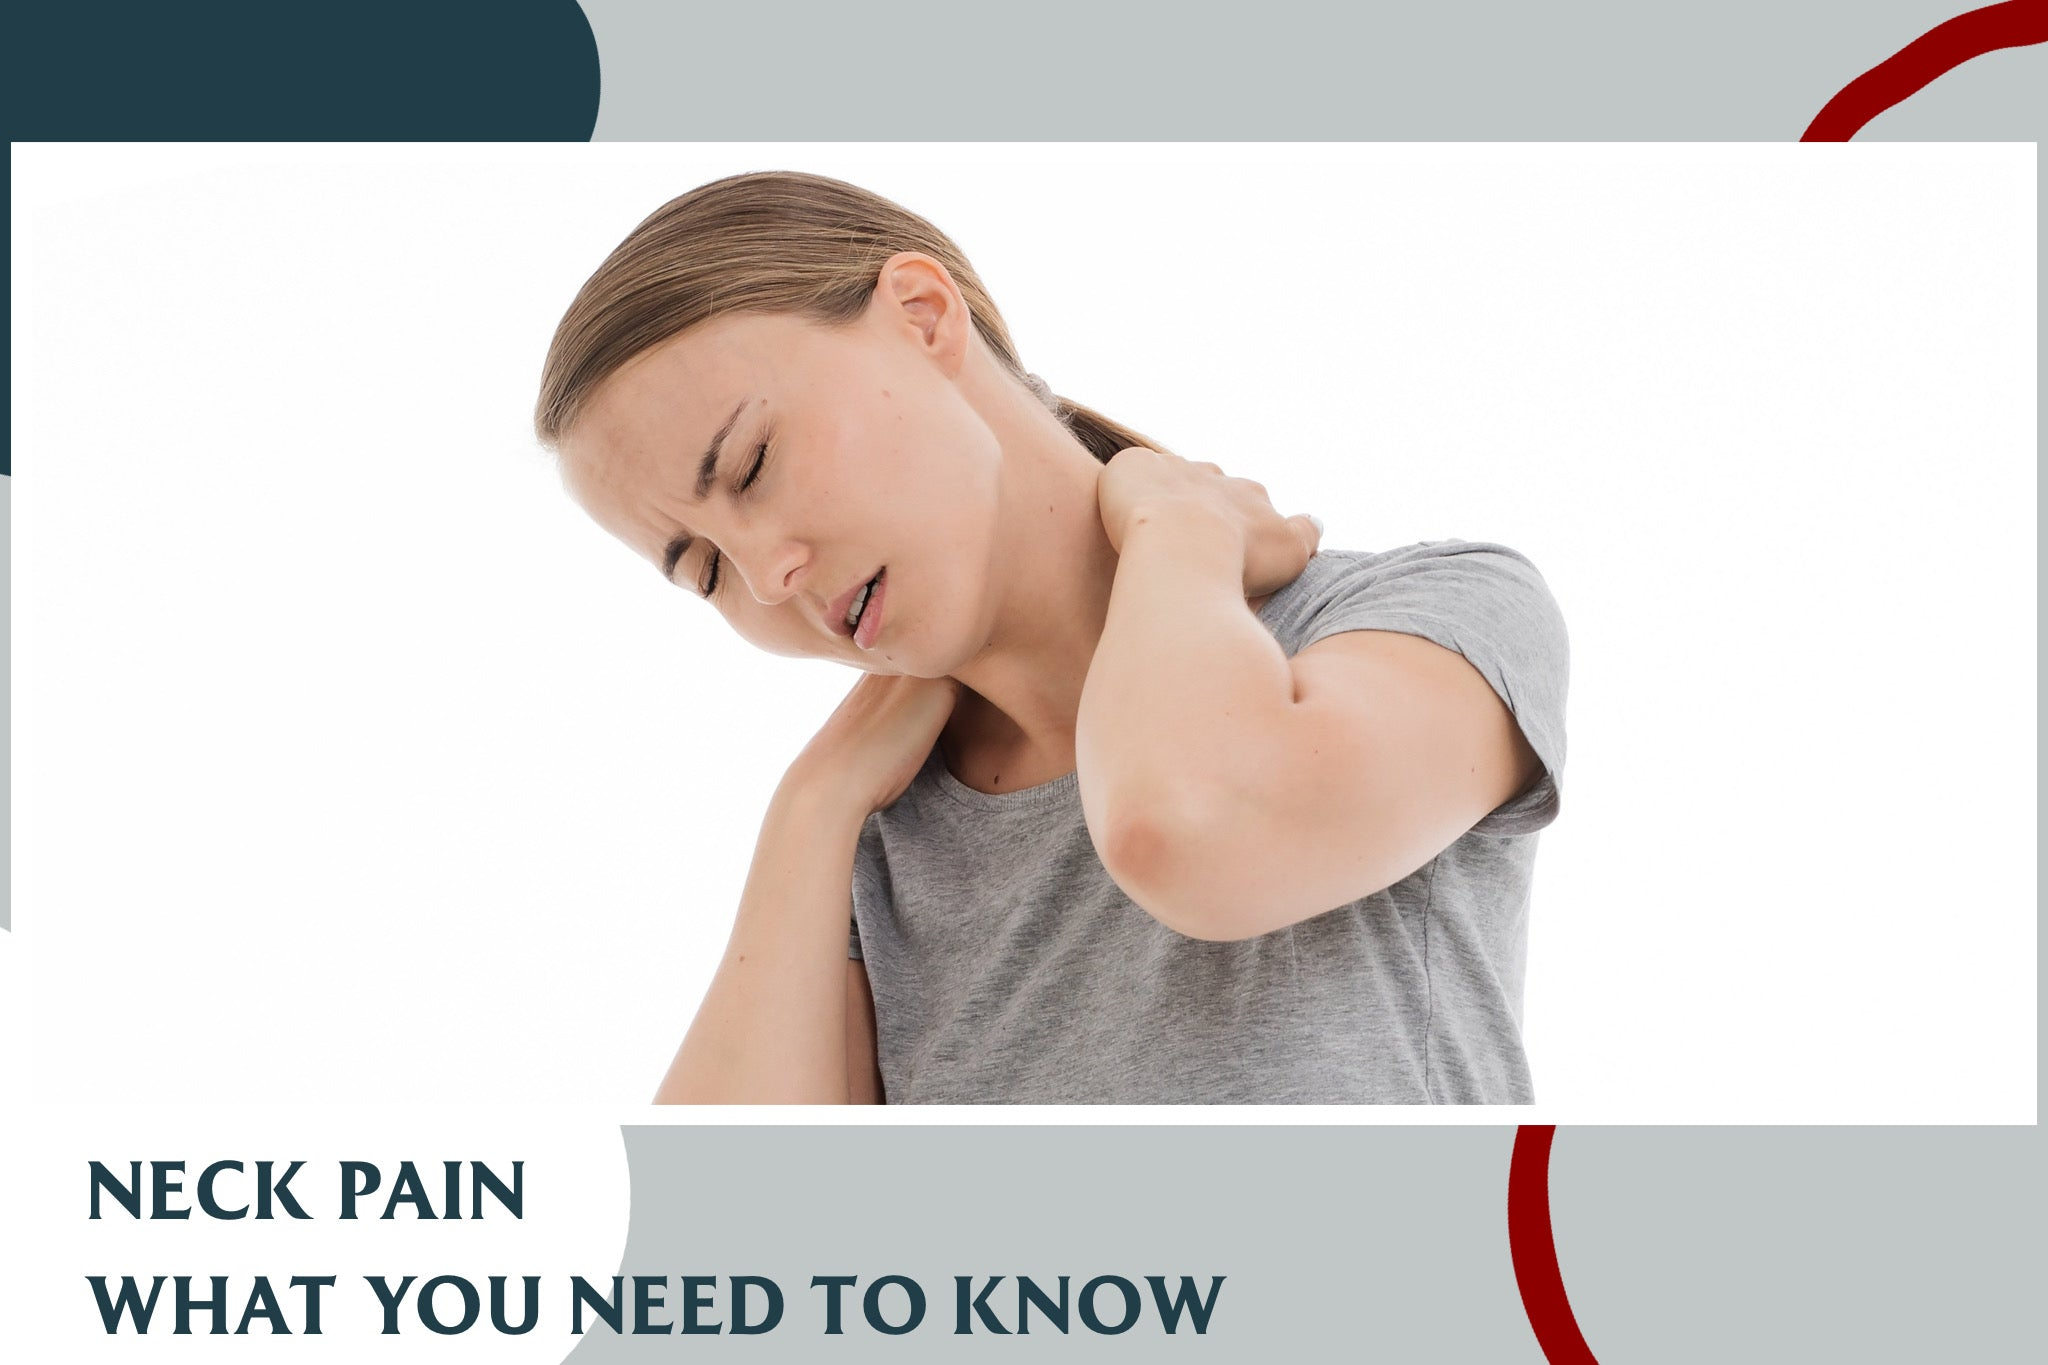 EverRelief Help for at home Neck Pain Relief